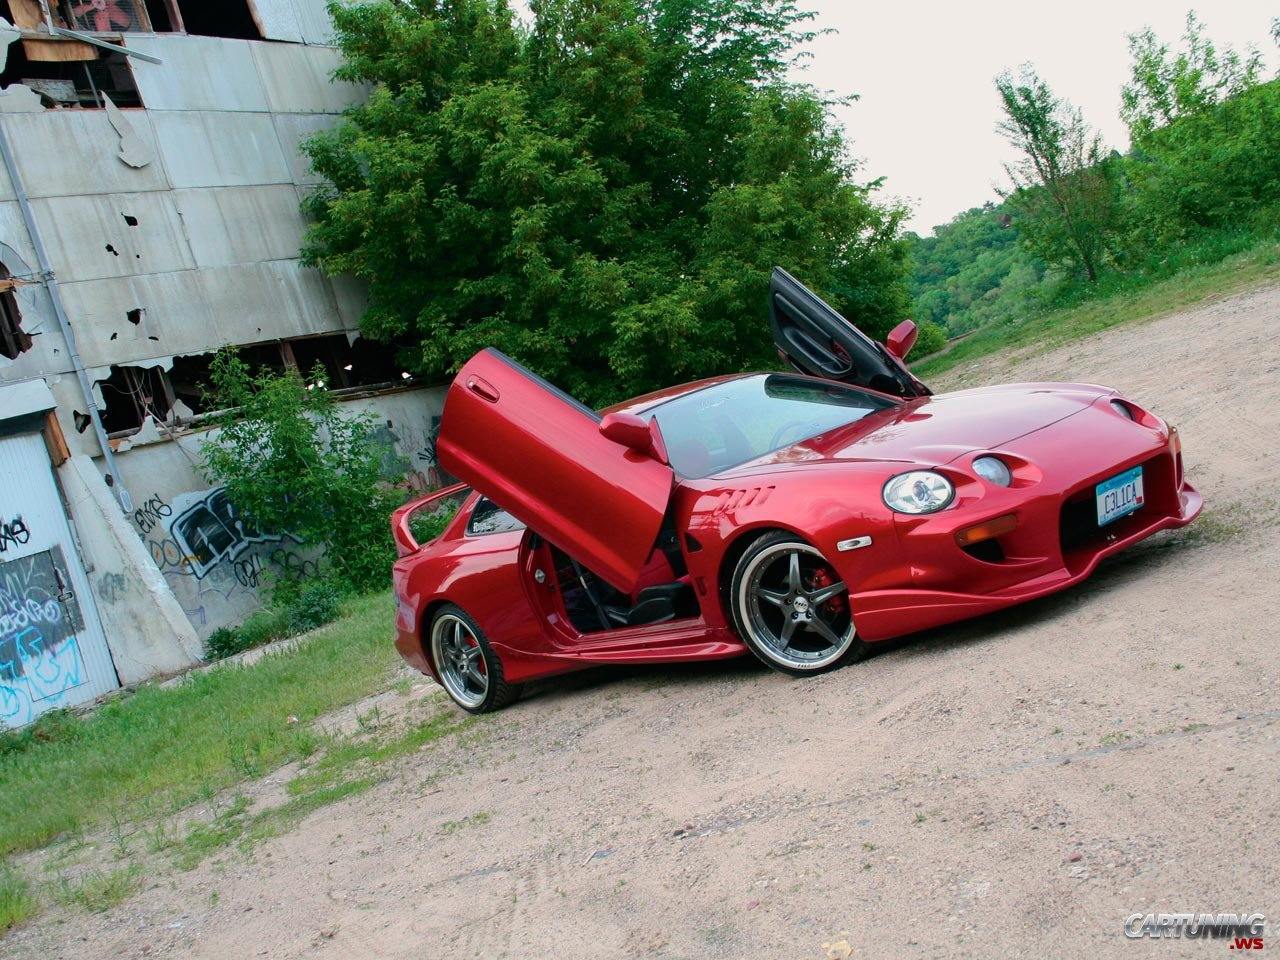 Tuning toyota celica st204 cartuning best car tuning photos from all the world